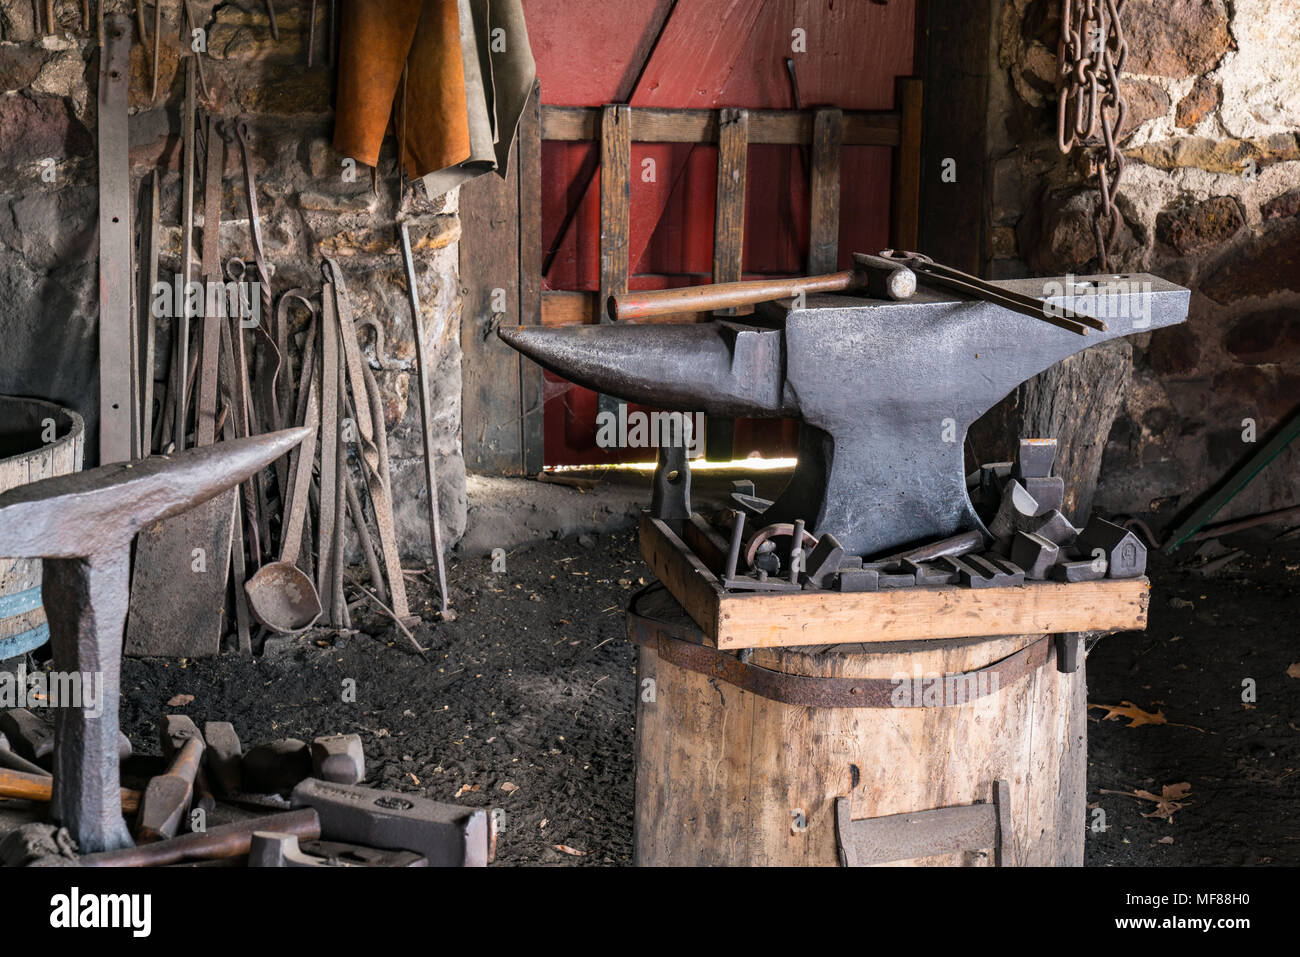 Iron Shop Tools On An Iron Anvil In An Old Blacksmiths Shop Stock Photo